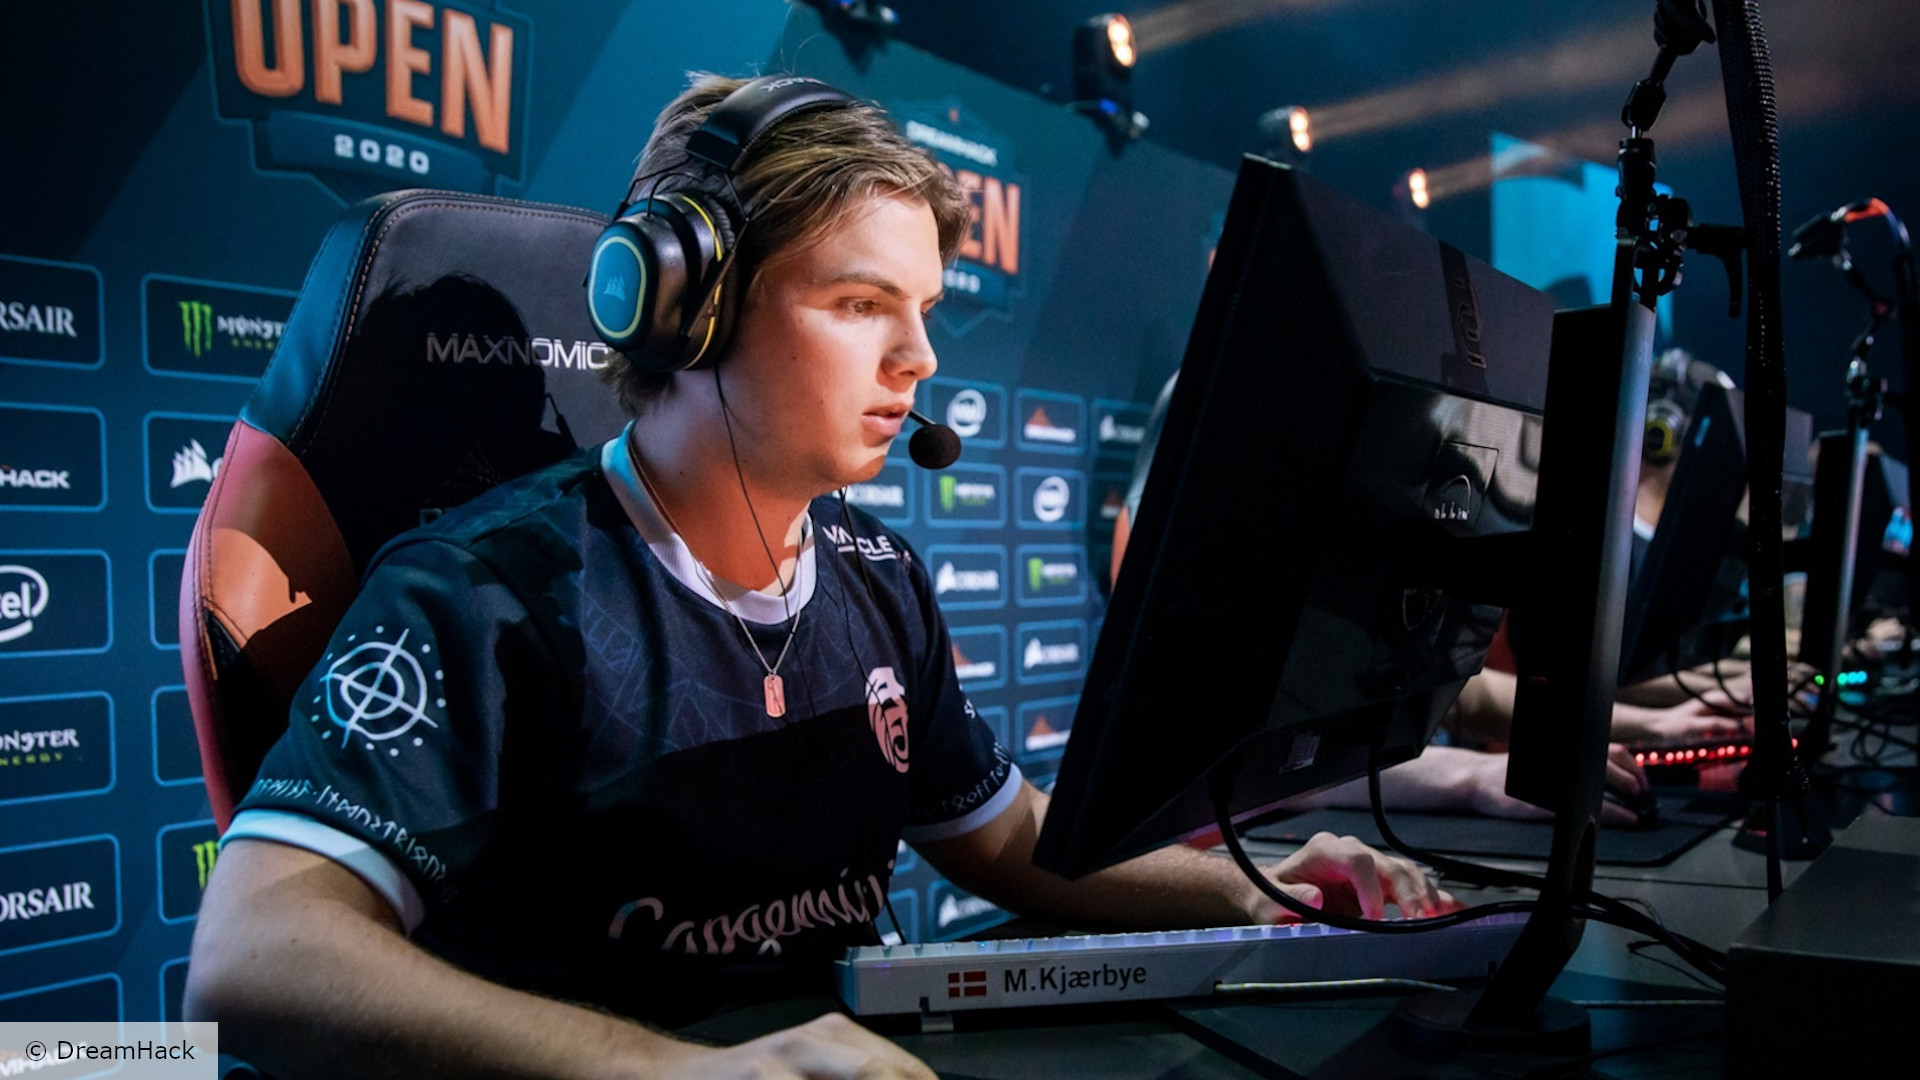 Kjaerbye takes a break from CS:GO, will be replaced by Kristou